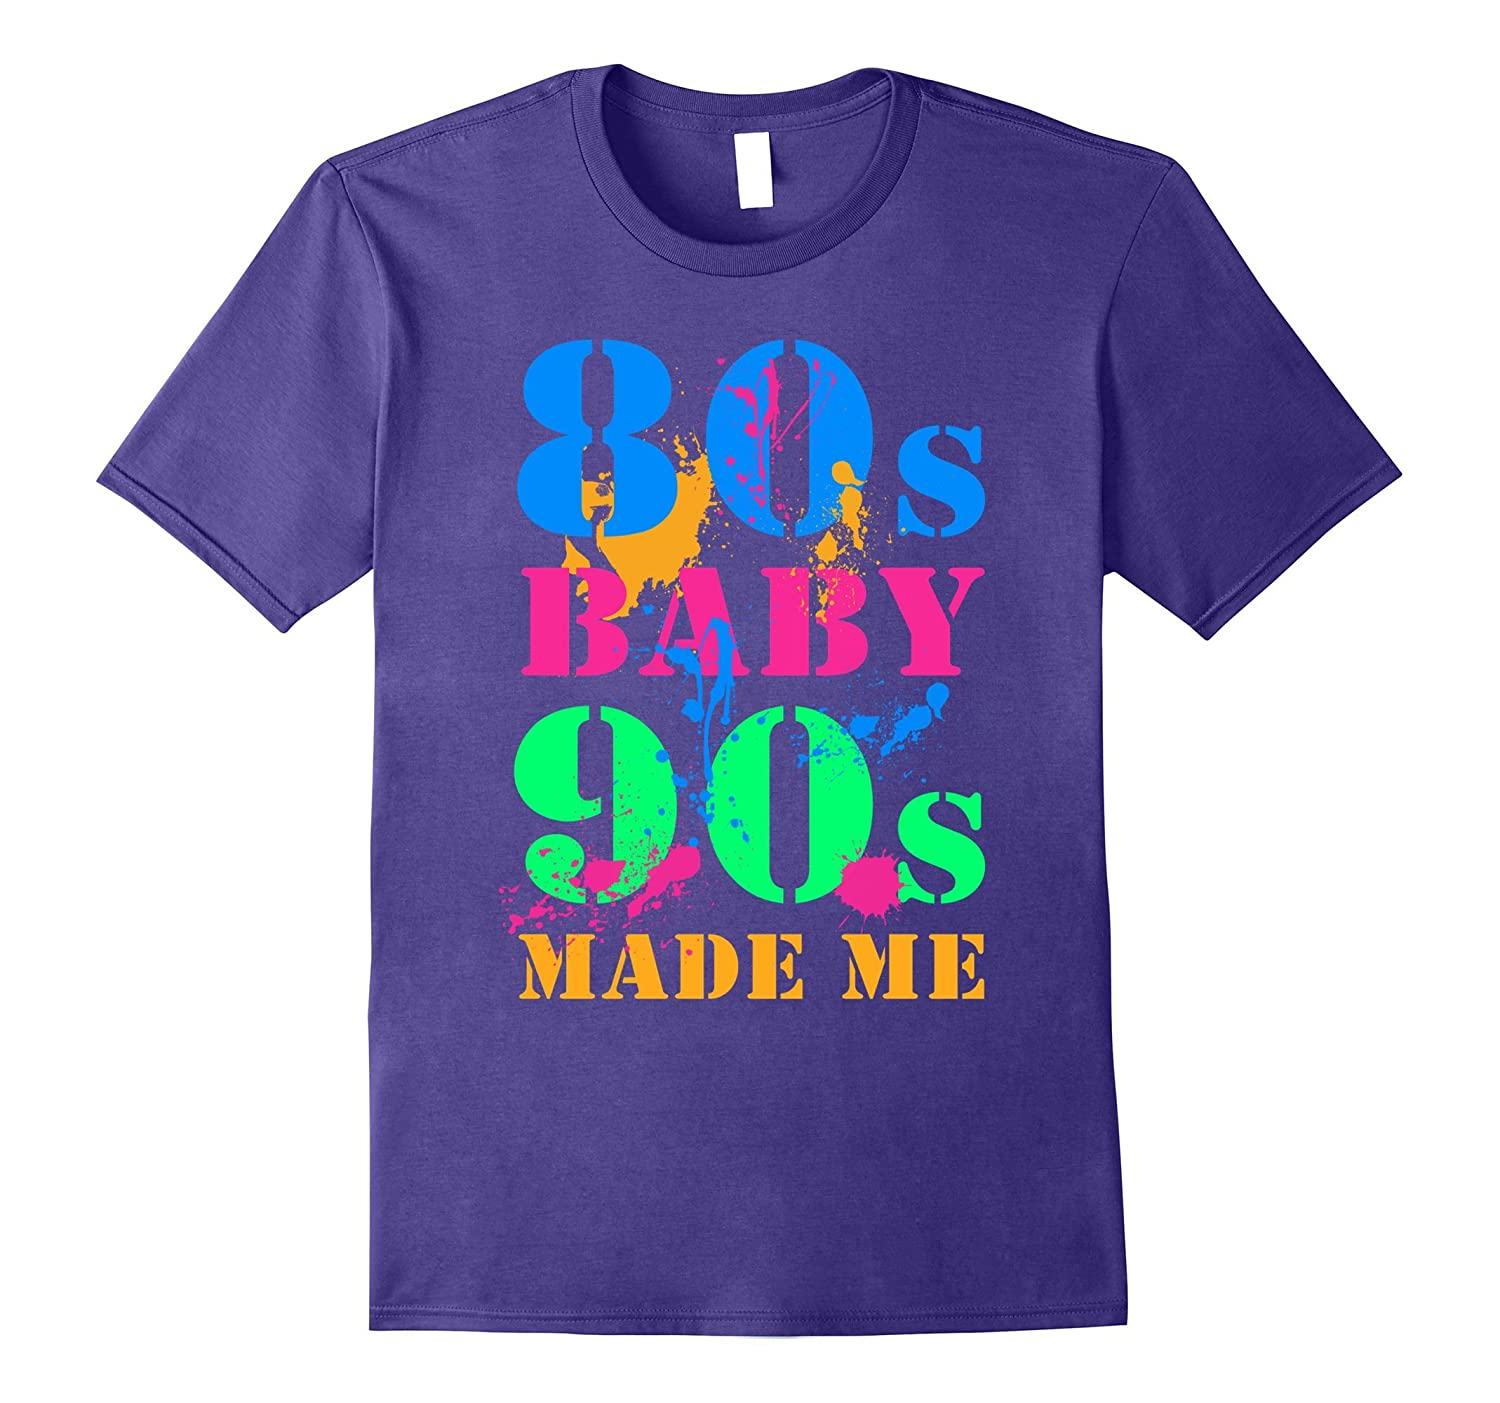 80S BABY 90S MADE ME VINTAGE RETRO T-SHIRT-PL